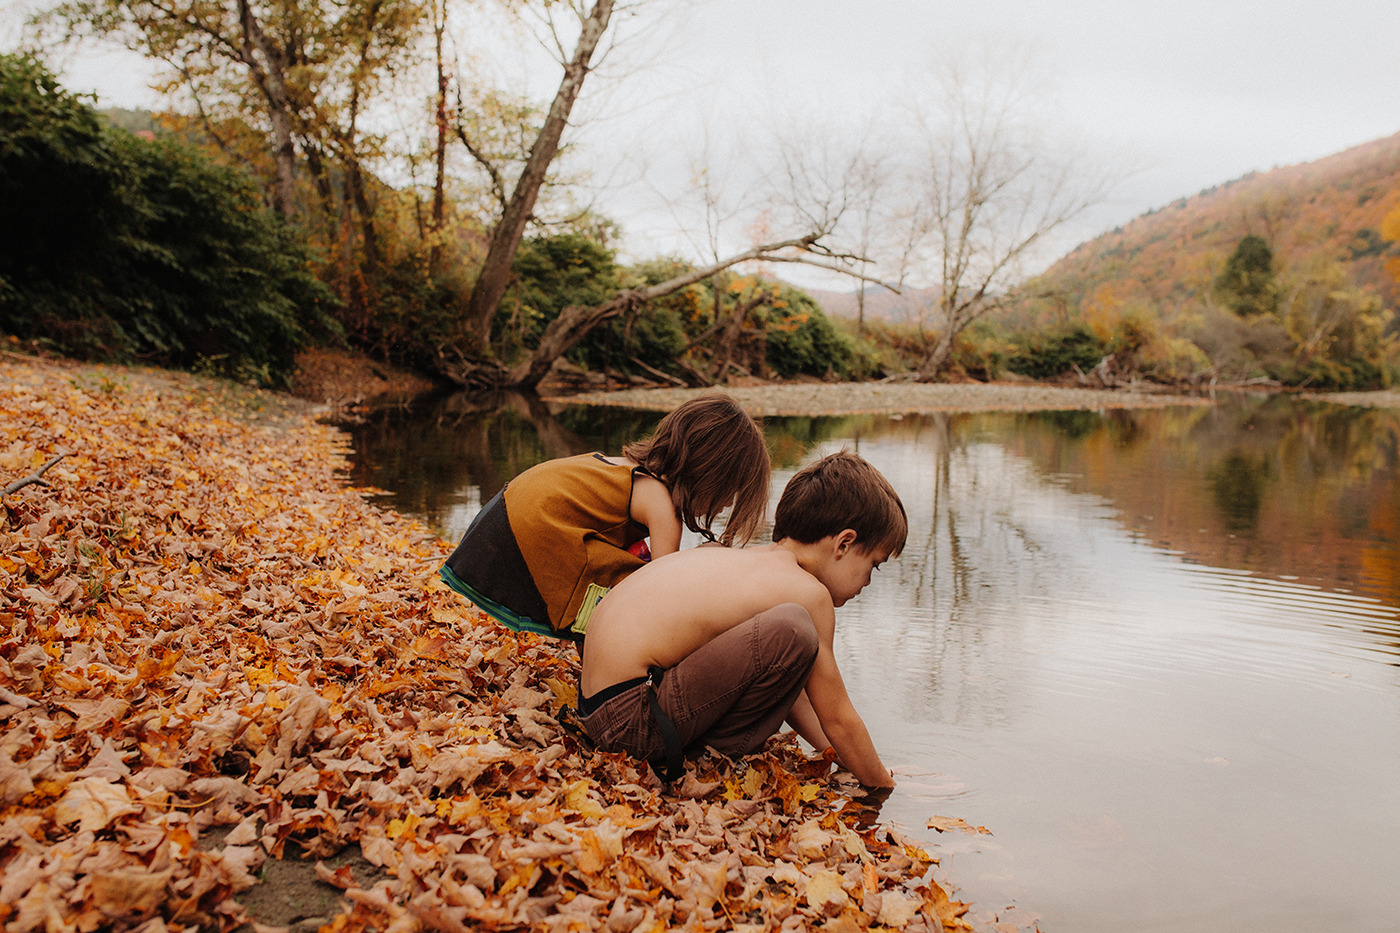 vermont-children-family-portraits-river-autumn-siblings.jpg